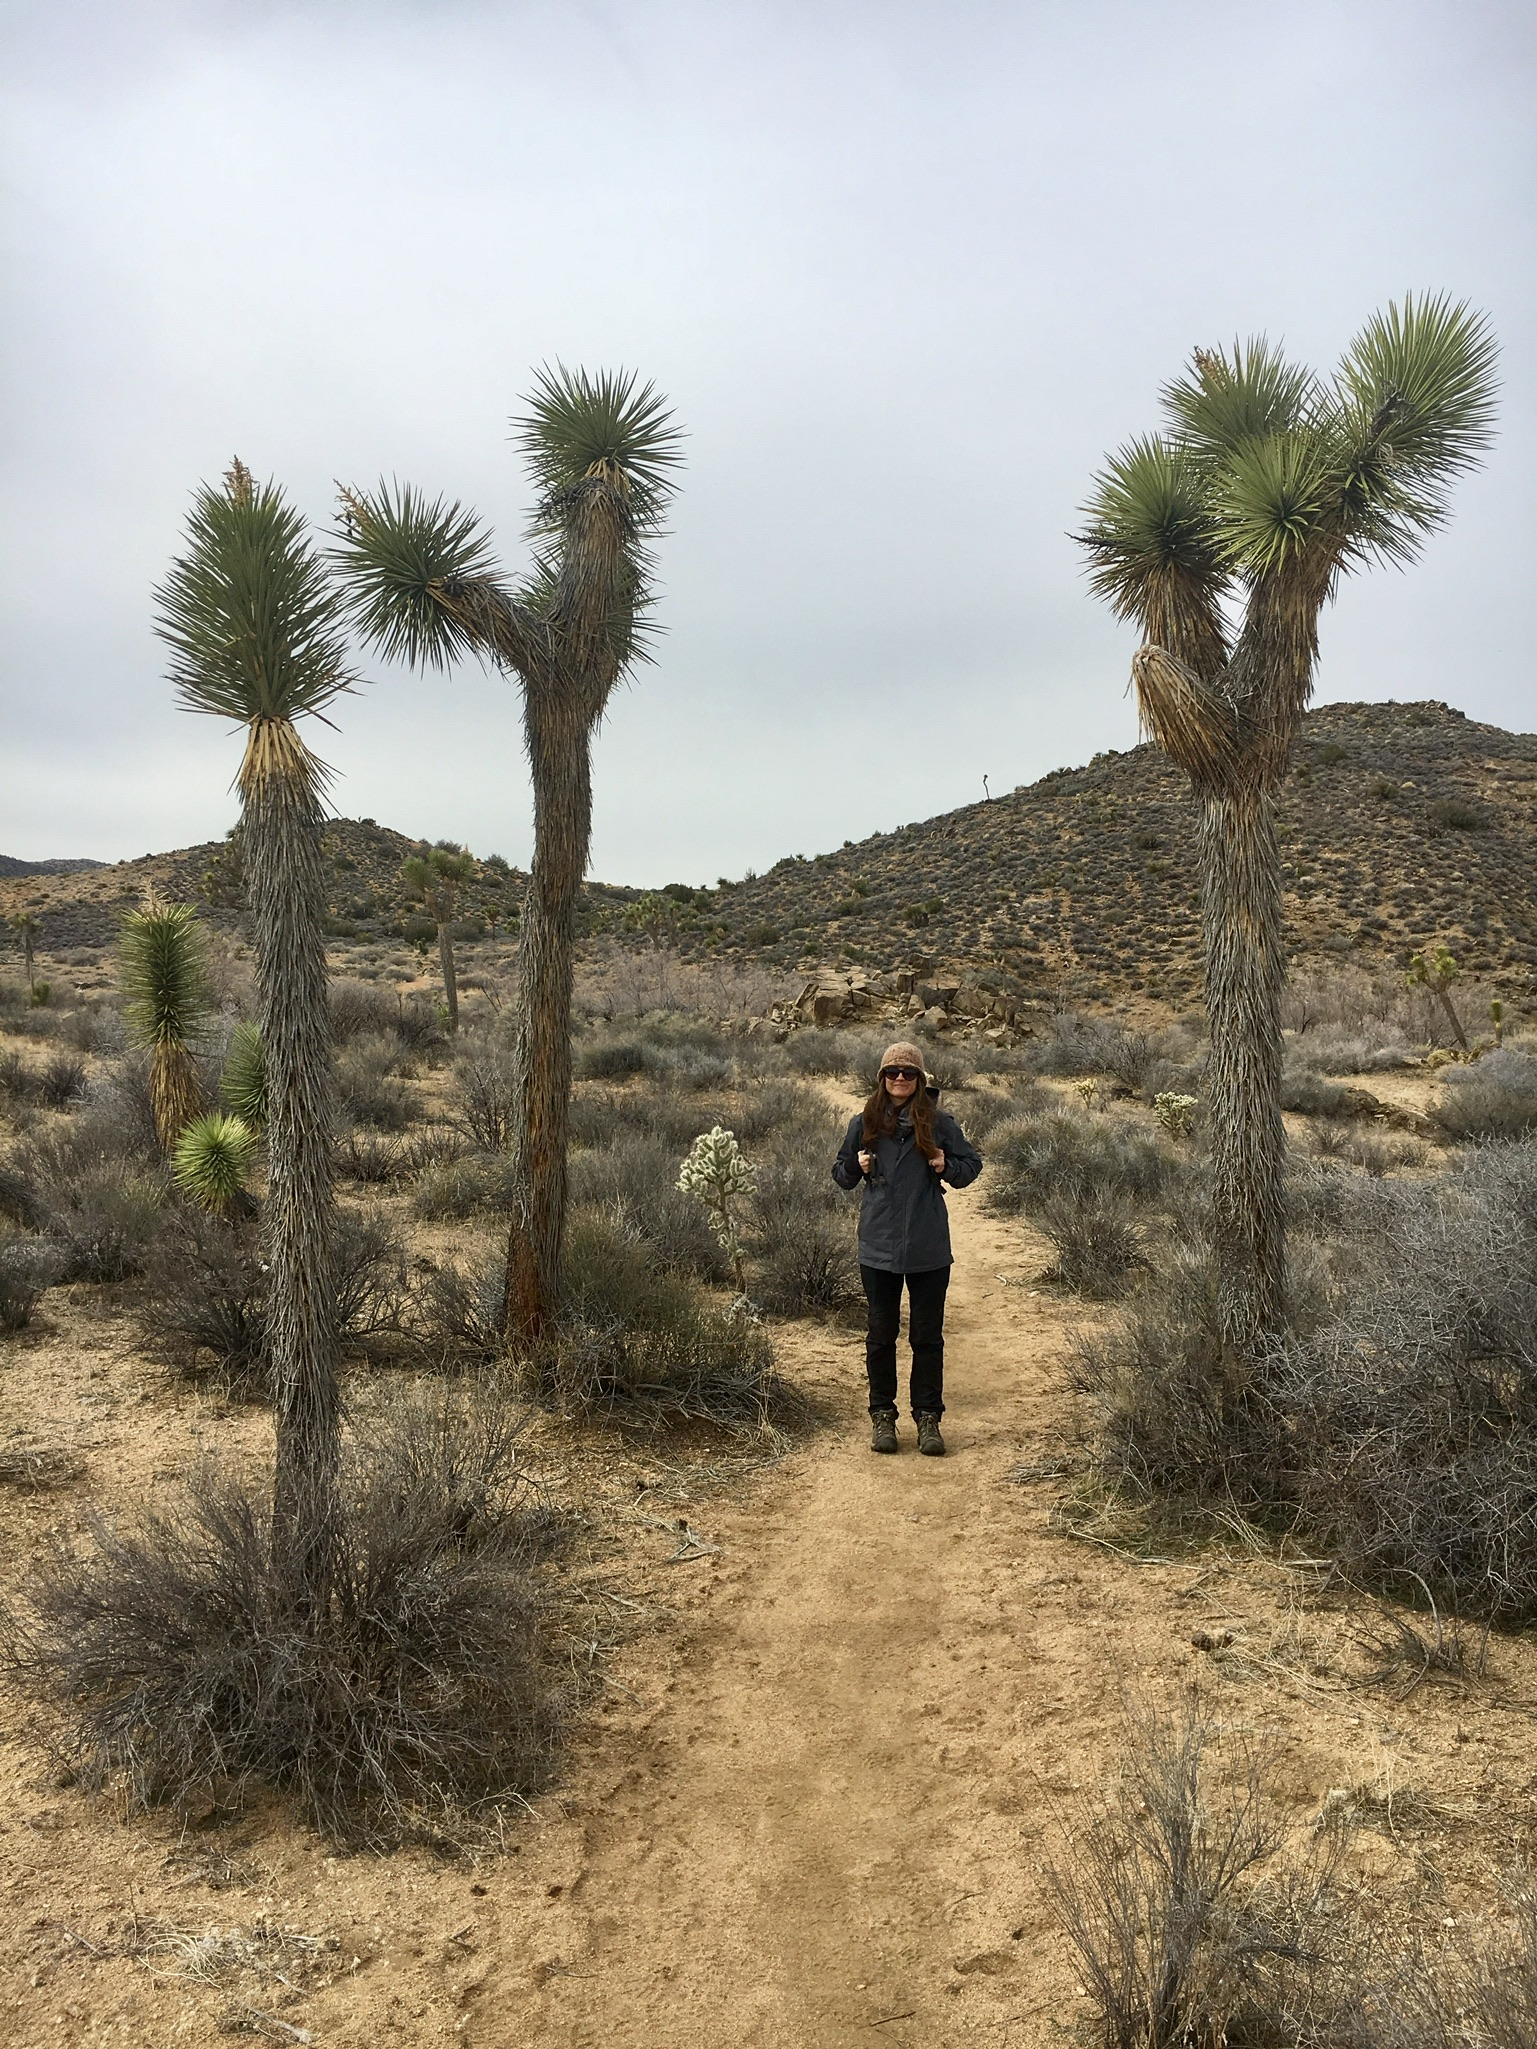 Cynthia hiking in the backcountry in Joshua Tree.